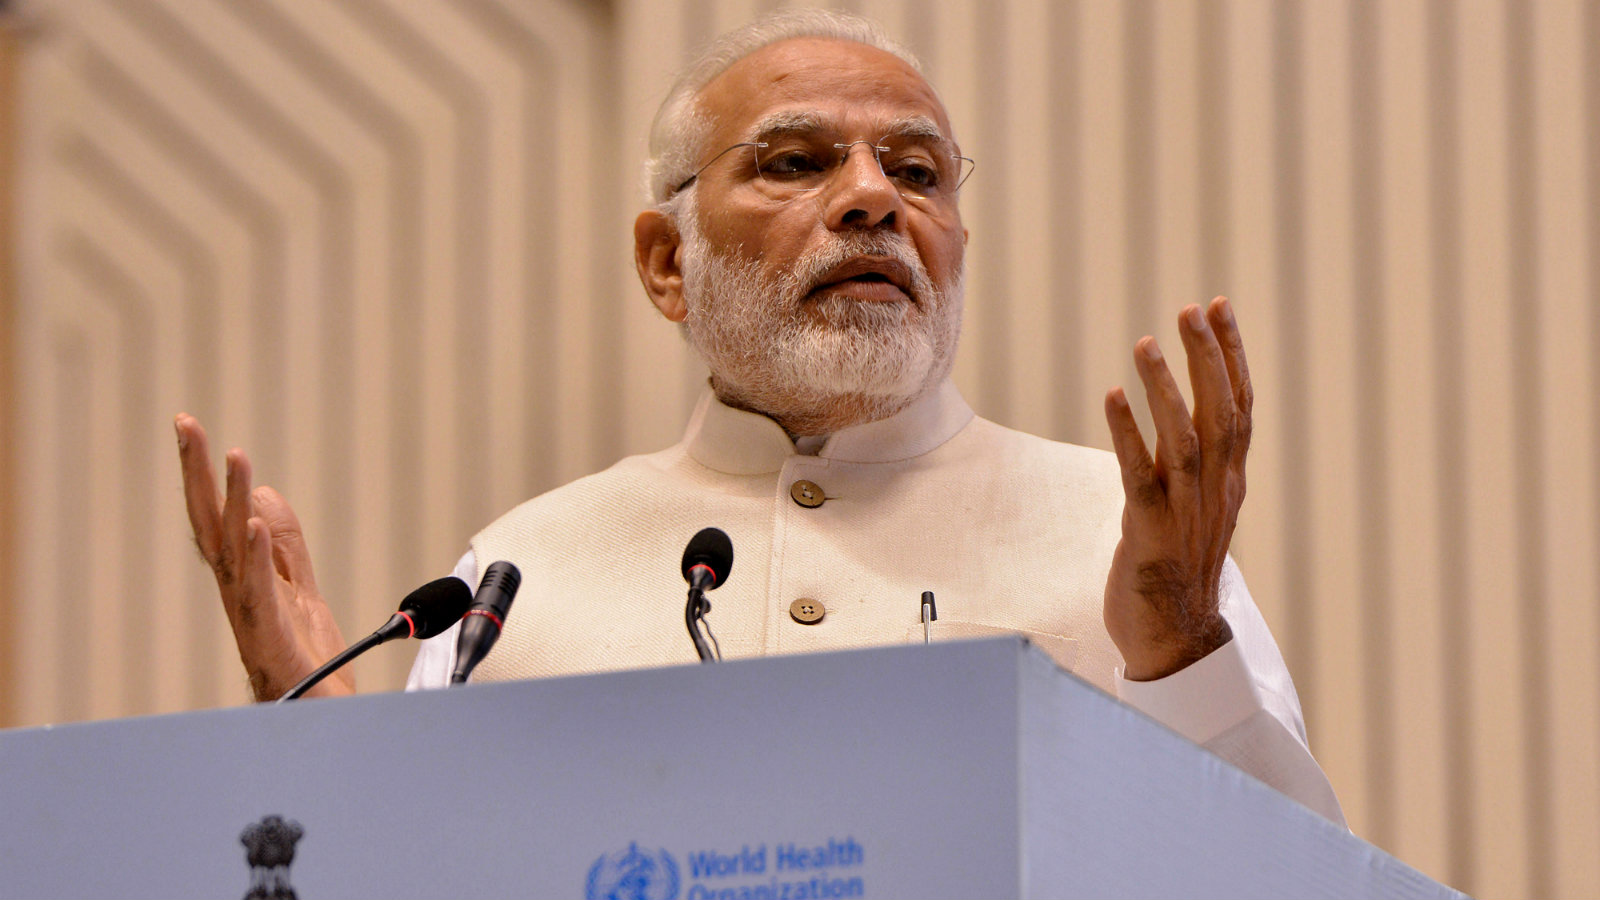 Indian Prime Minister Narendra Modi speaks during the inauguration of the End tuberculosis (TB) Summit, in New Delhi, India 13 March 2018. Prime minister Modi announced that India has set the aim to eradicate TB from India by 2025, a news reports said.